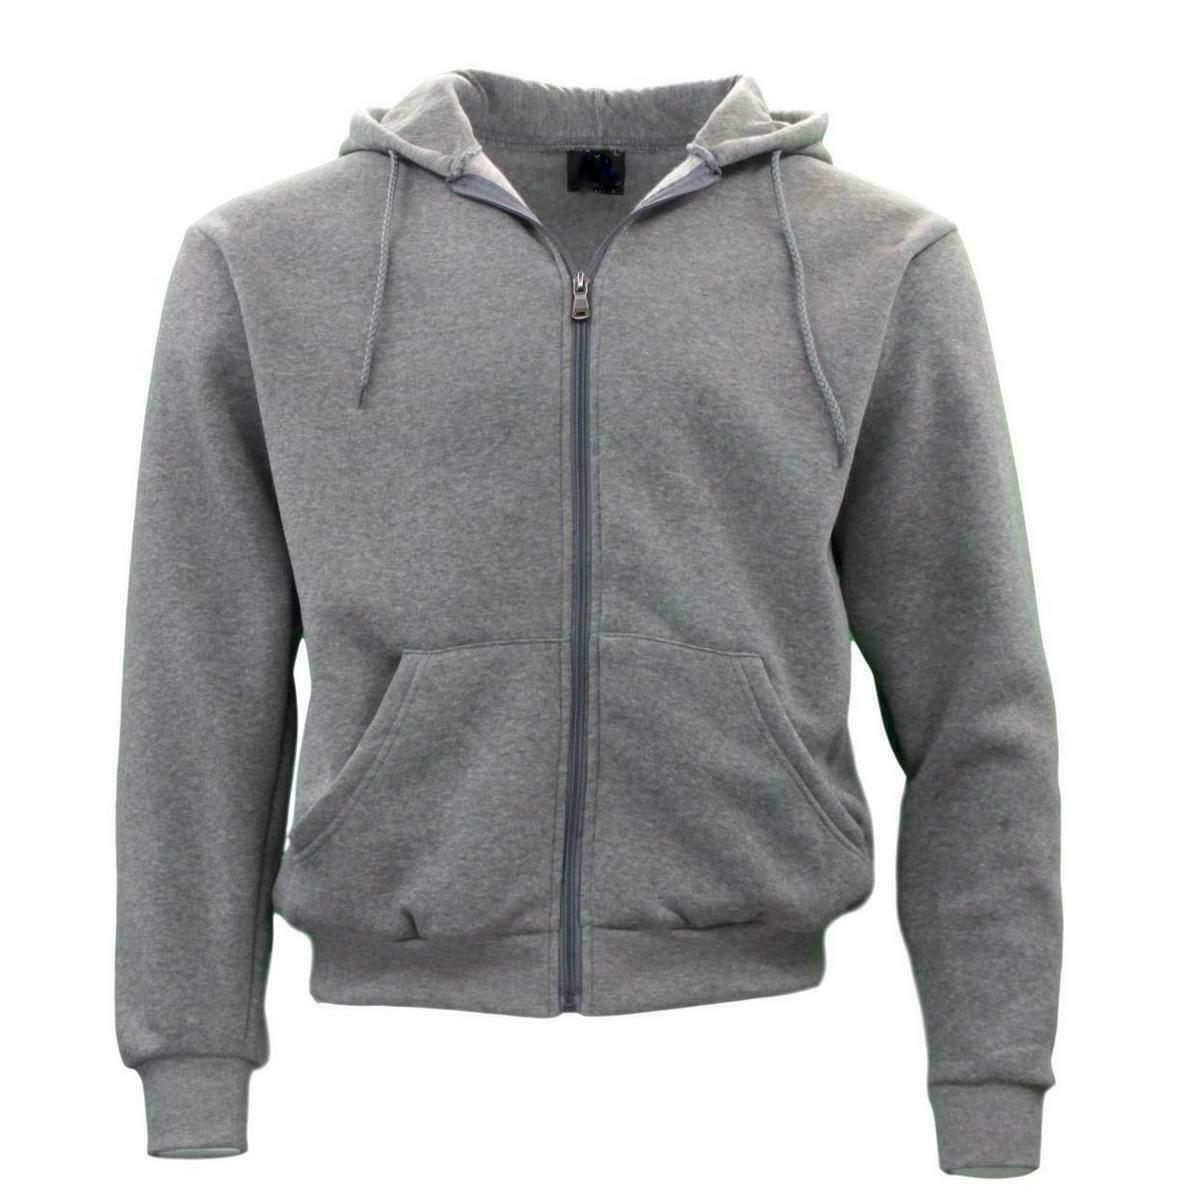 Adult-Unisex-Men-039-s-Zip-Up-Hoodie-w-Fleece-Hooded-Jacket-Jumper-Basic-Blank-Plain thumbnail 28